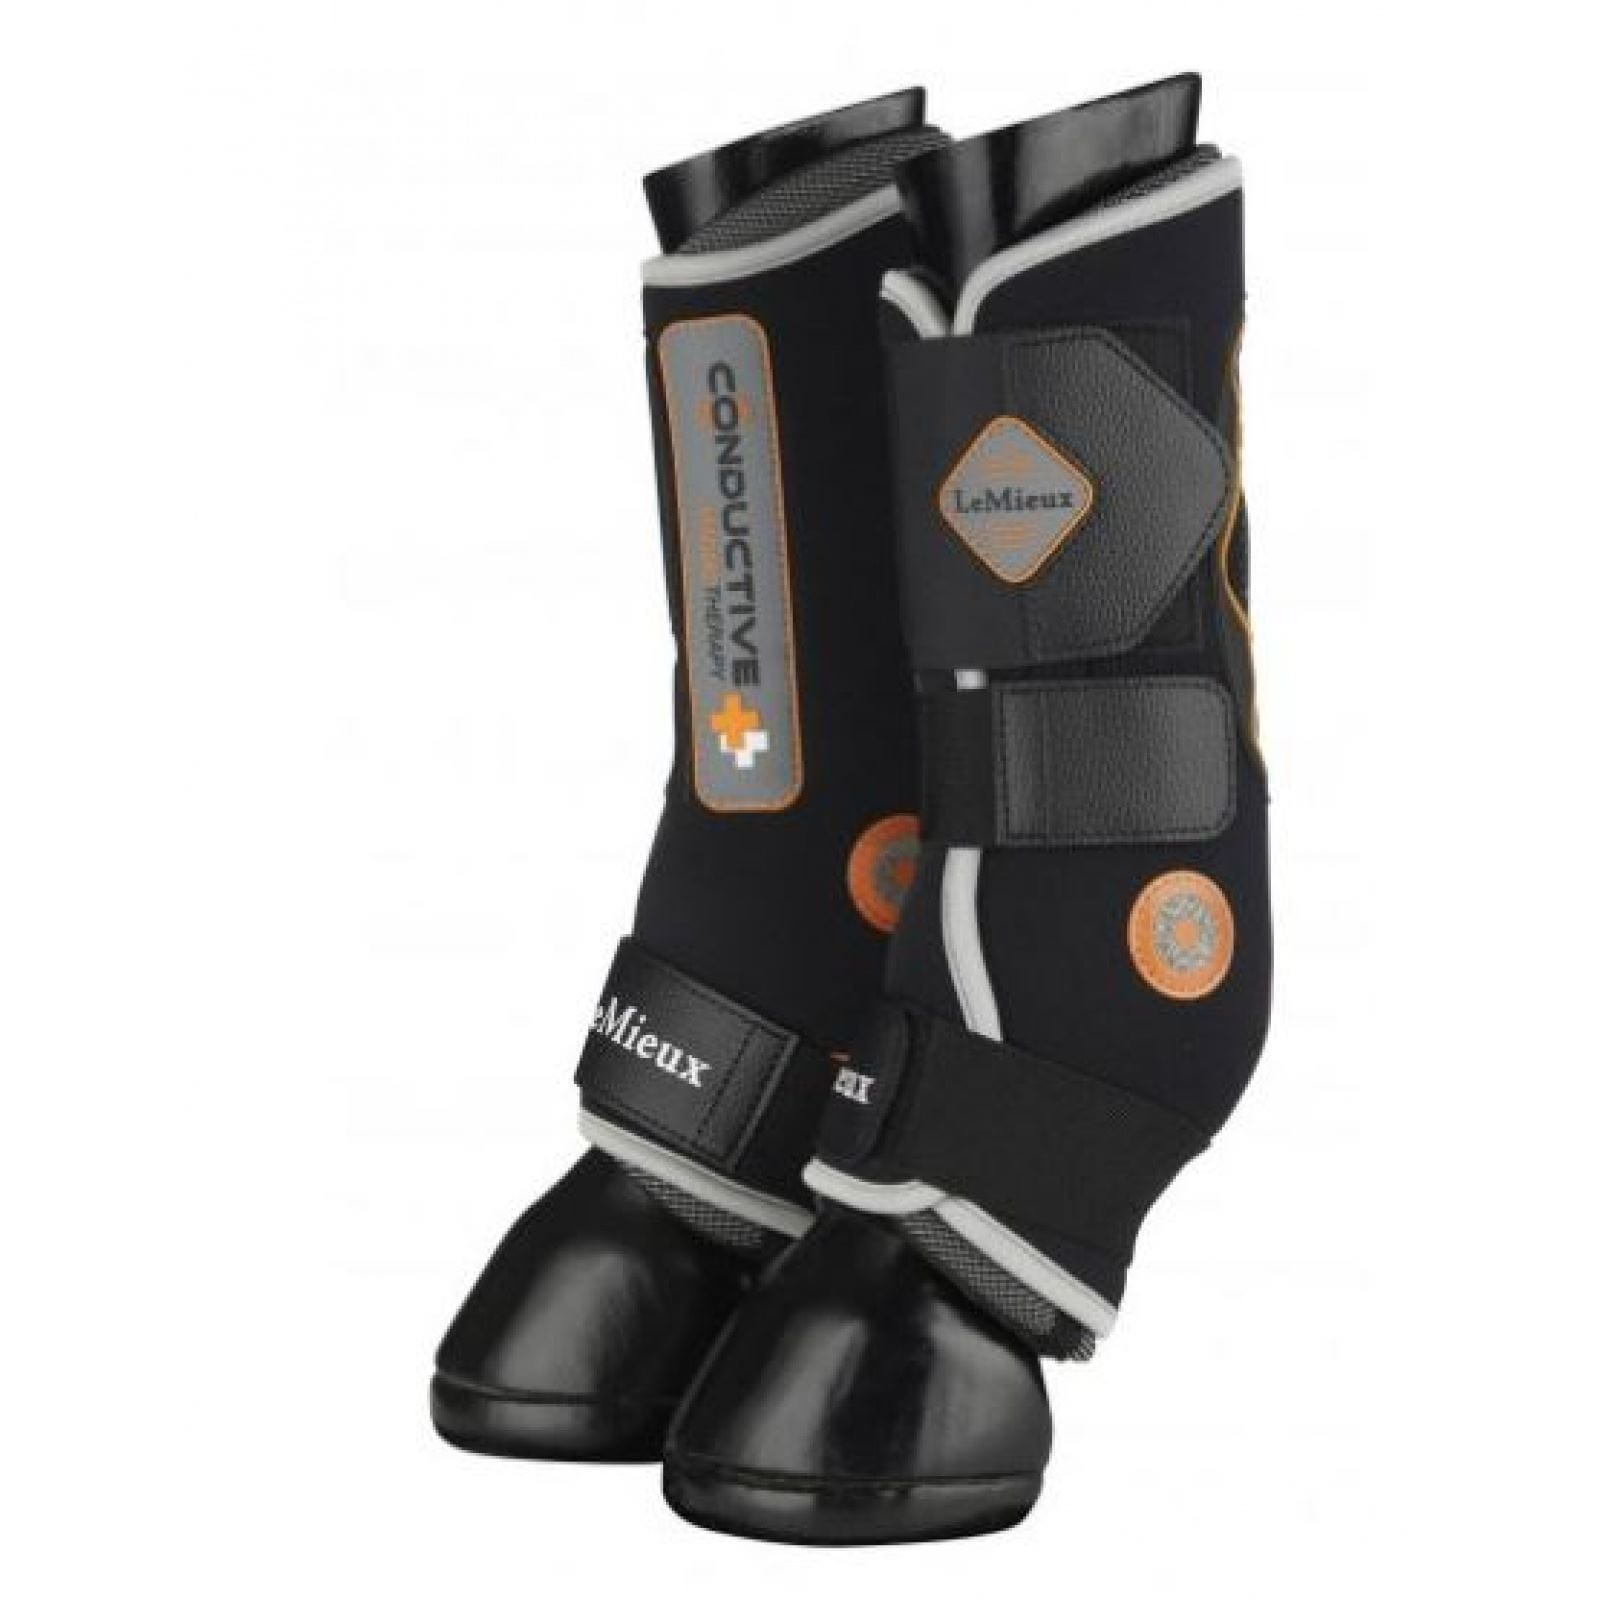 LeMieux Conductive Magno Magnetic Therapy Boots